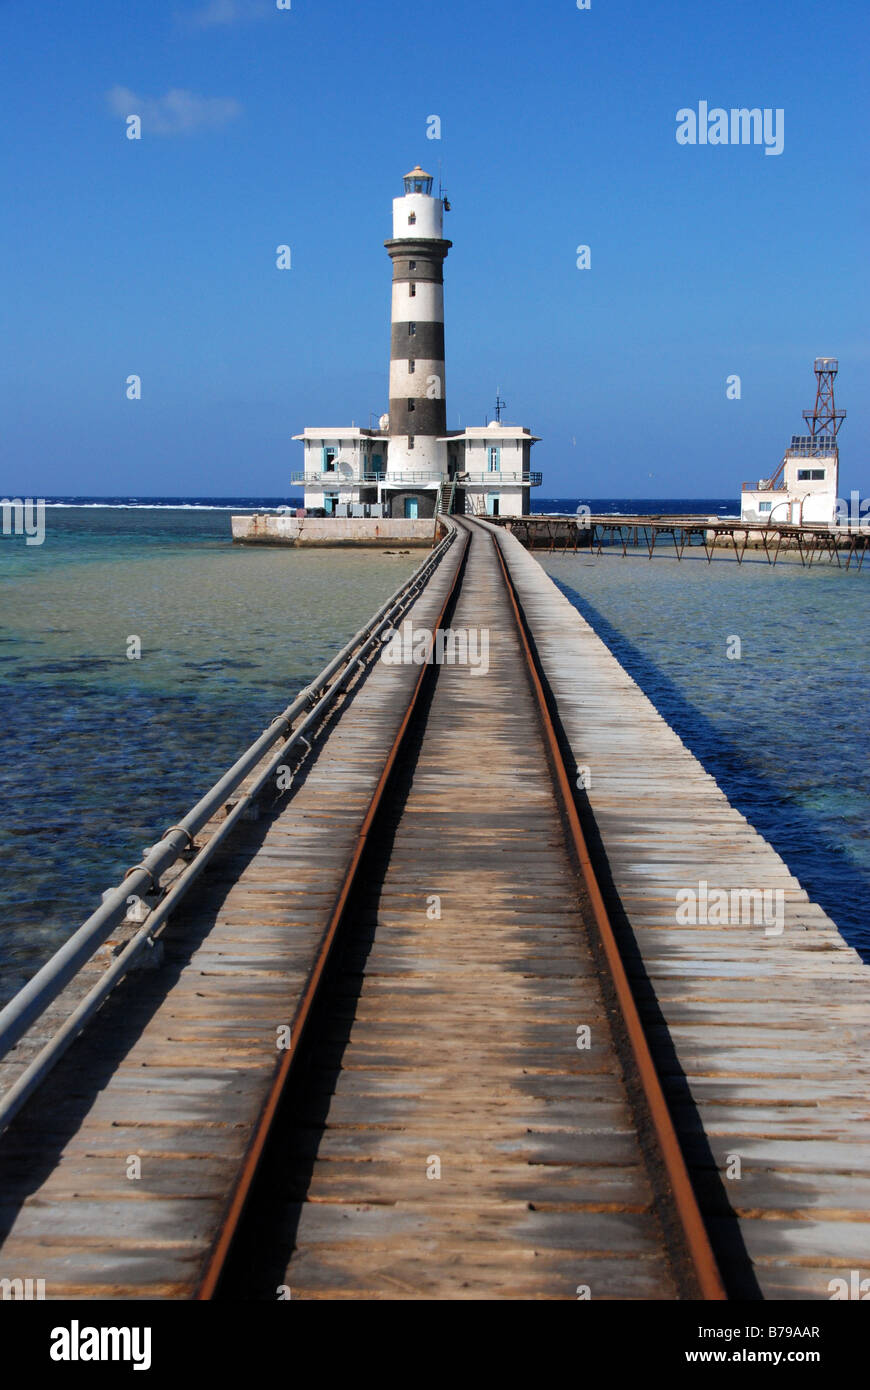 Lighthouse of Daedalus reef, Soutern Egyptian Red Sea - Stock Image